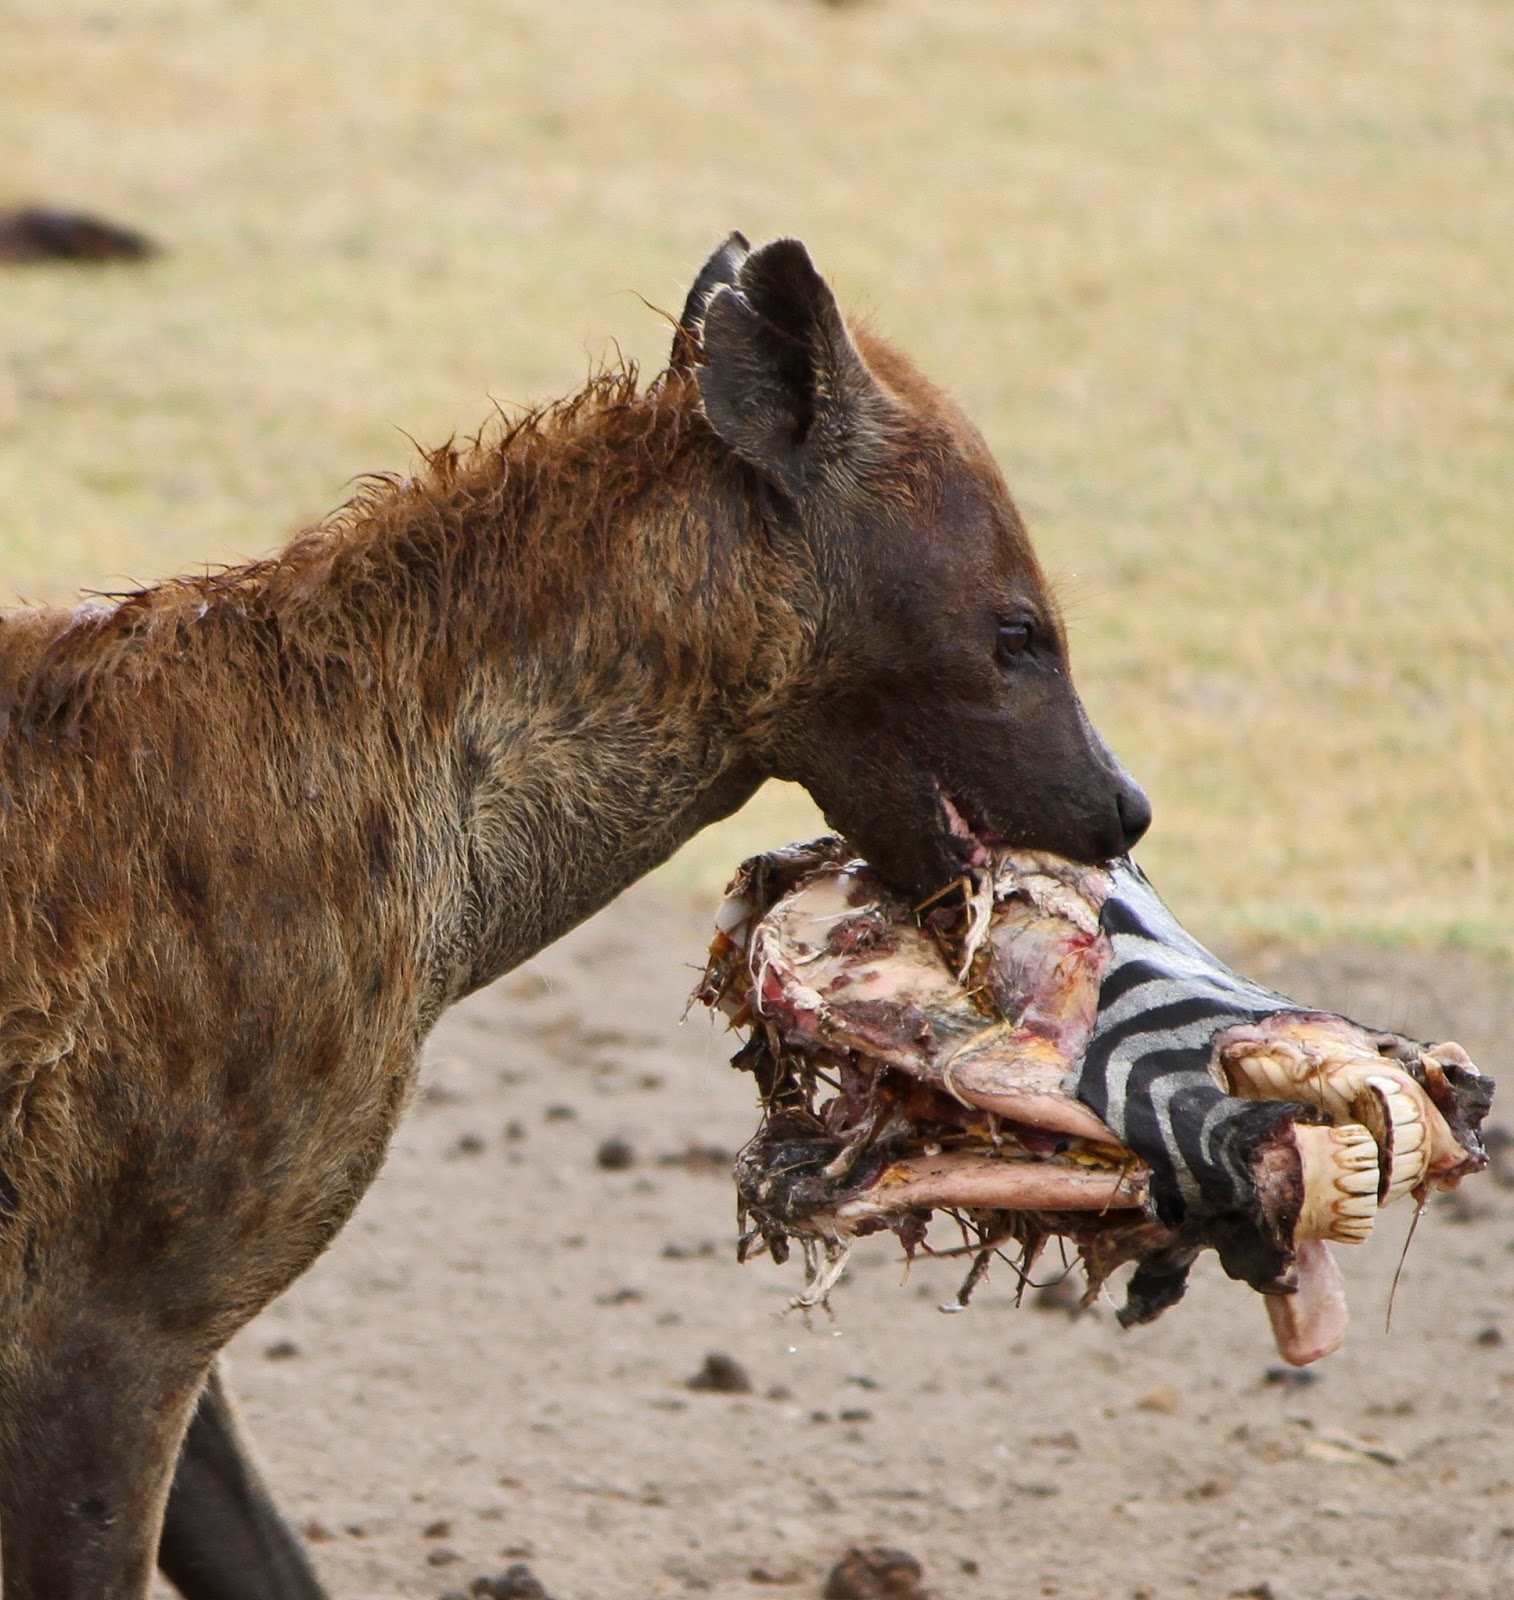 A Hyena taking off with a dead zebra's head.